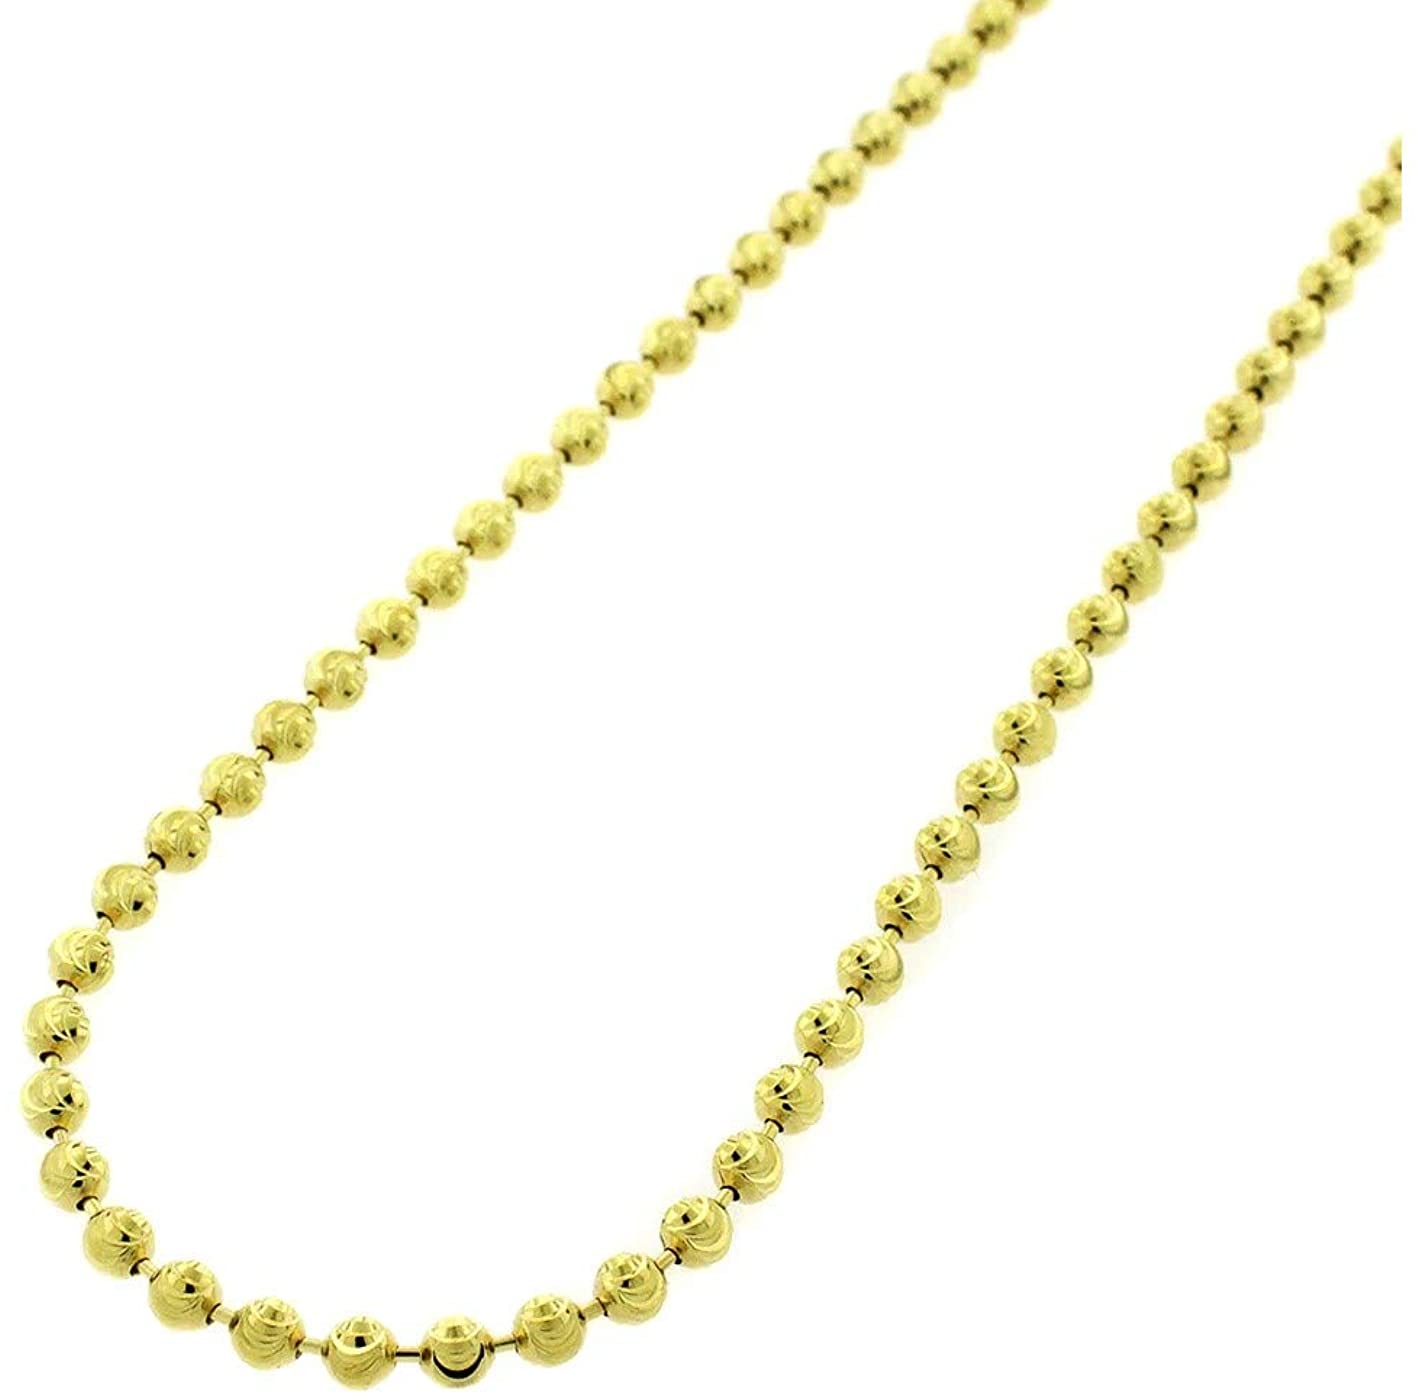 925 Sterling Silver Moon Cut Bead Chain Necklace, 2MM 3MM 4MM-Dog Tag Ball Link Necklace, Silver Beaded Necklace in,Rhodium and Yellow Gold,Men and Women, Silver Jewelry Gift, 16-36